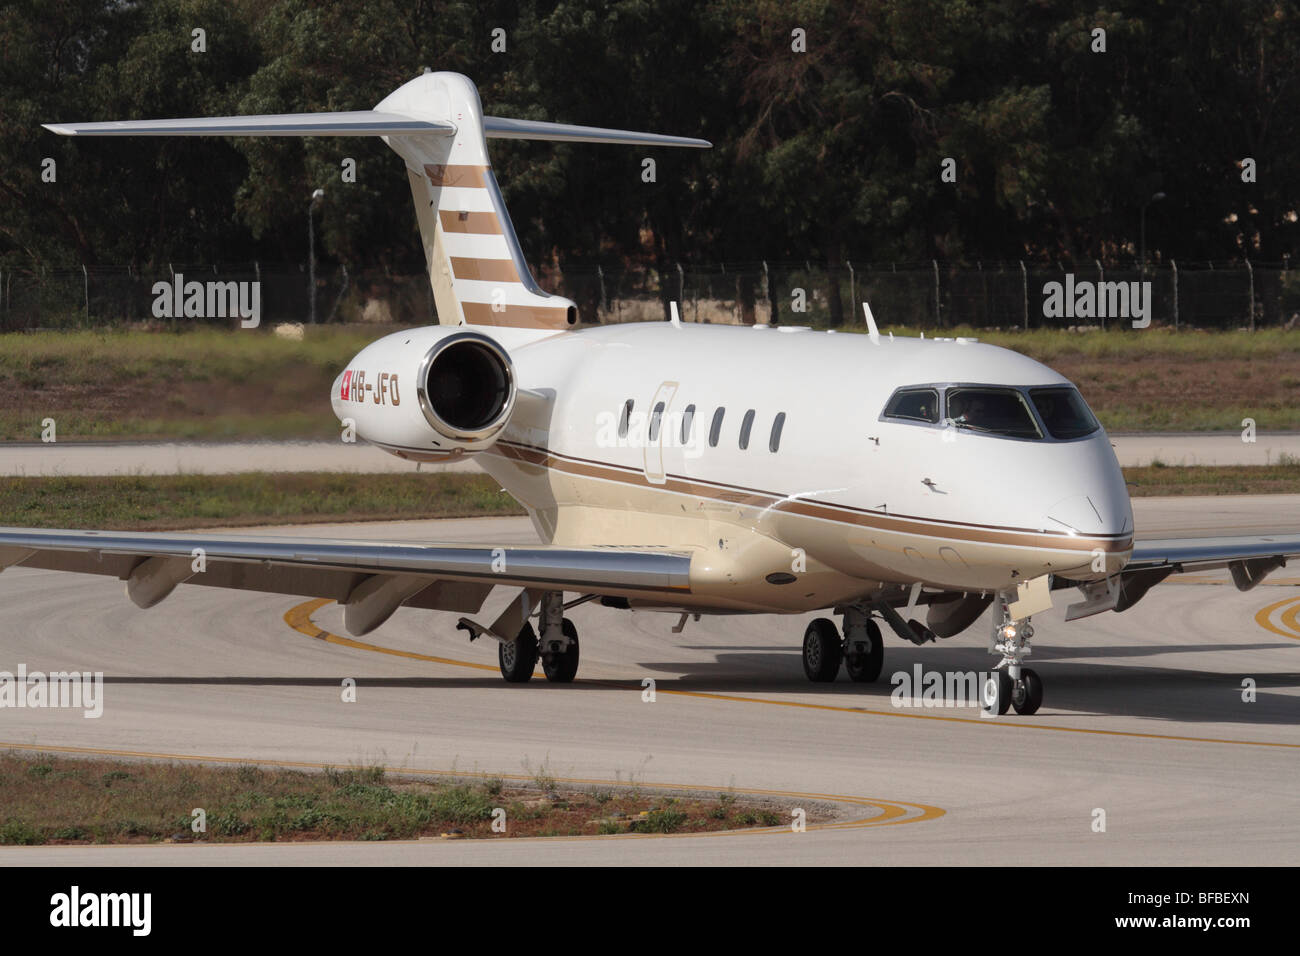 Bombardier Challenger 300 business jet taxiing on arrival at Malta International Airport - Stock Image